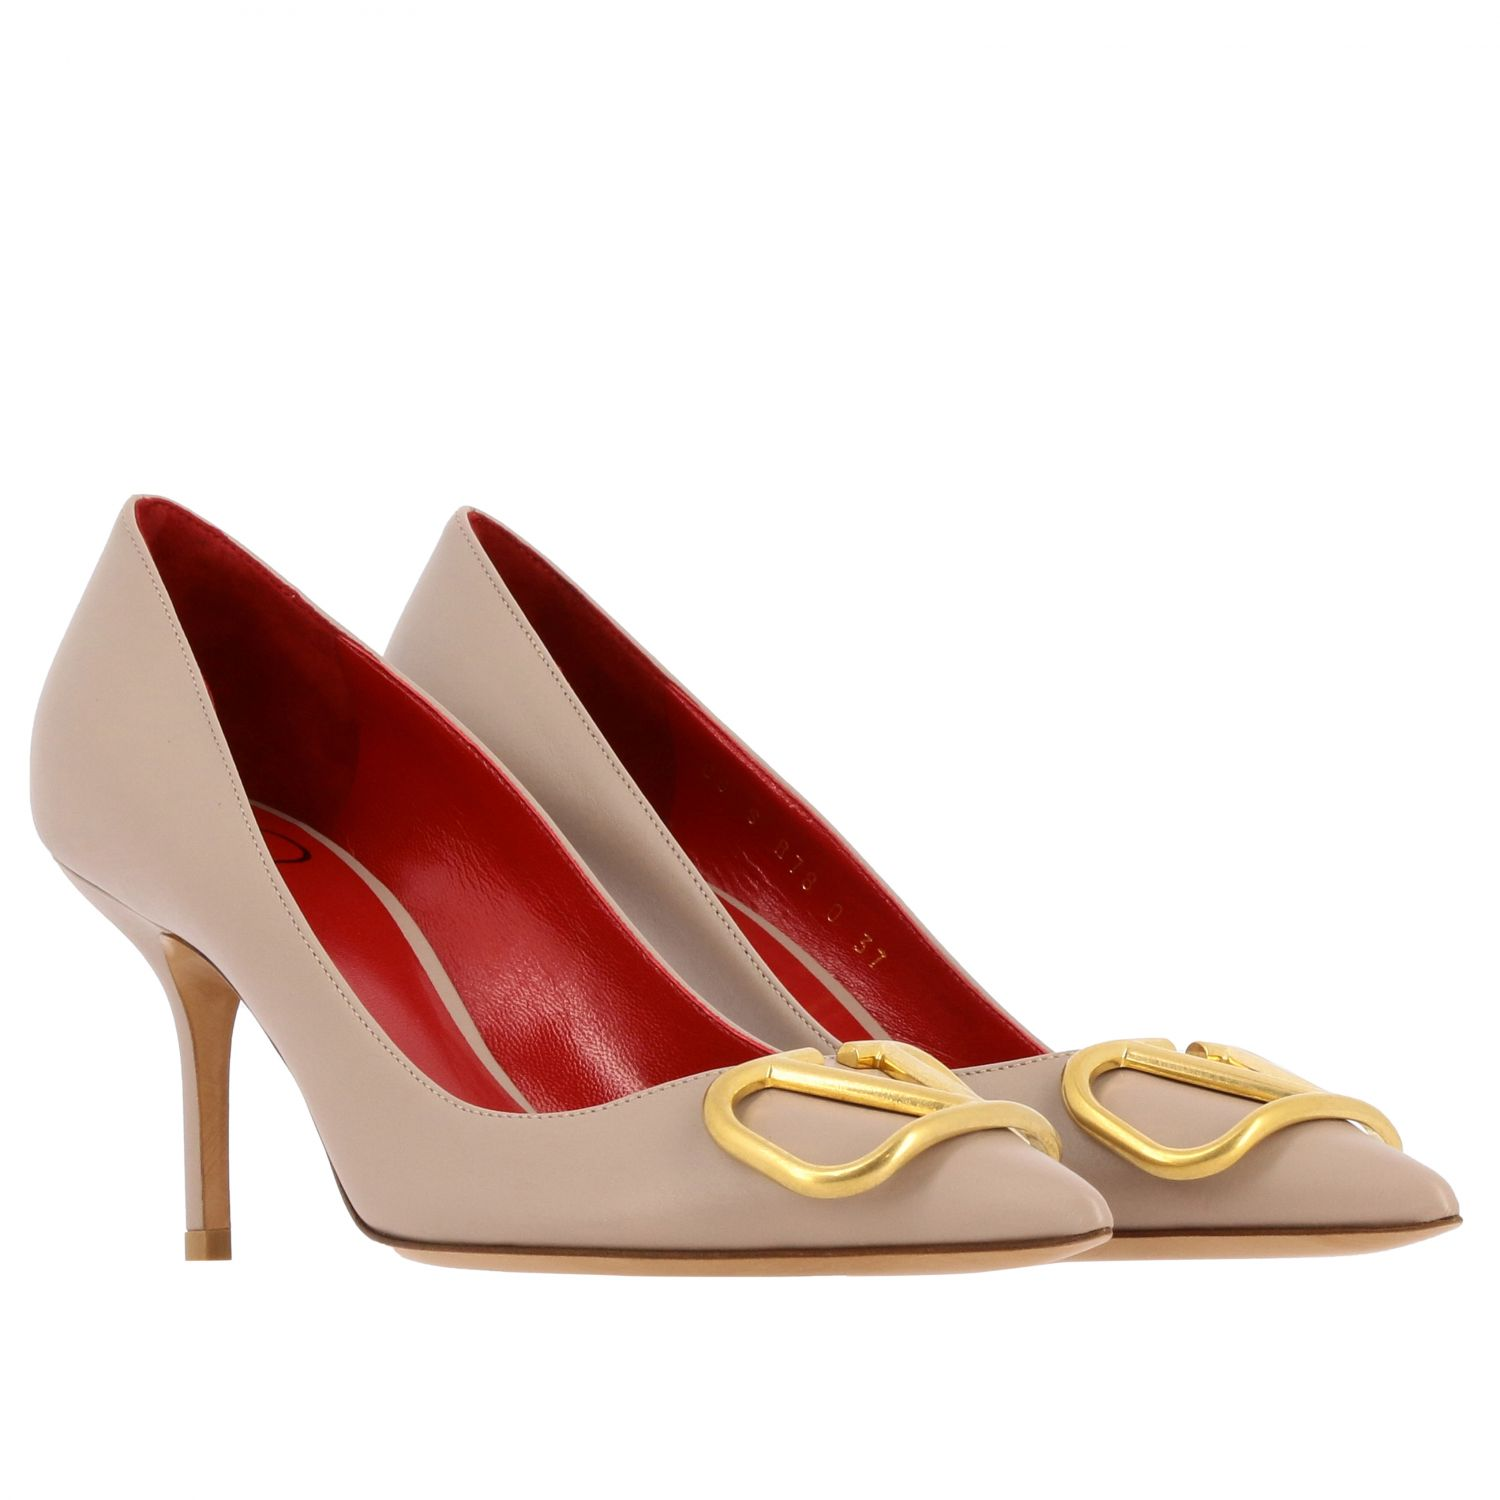 Pumps Valentino Garavani: Shoes women Valentino Garavani blush pink 2